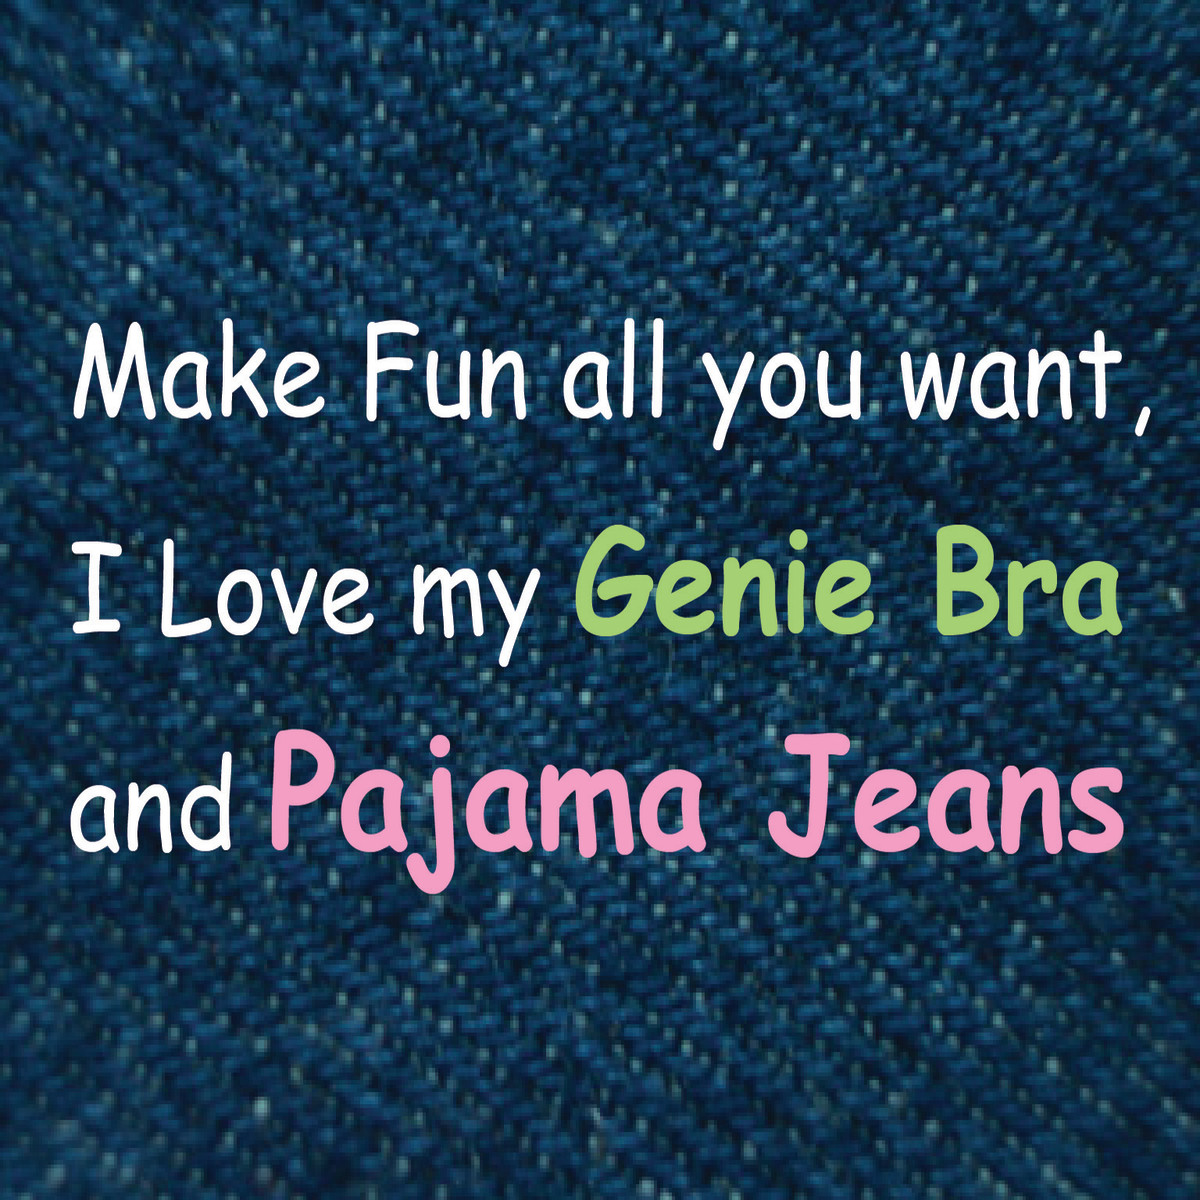 I Love My Genie Bra and Pajama Jeans